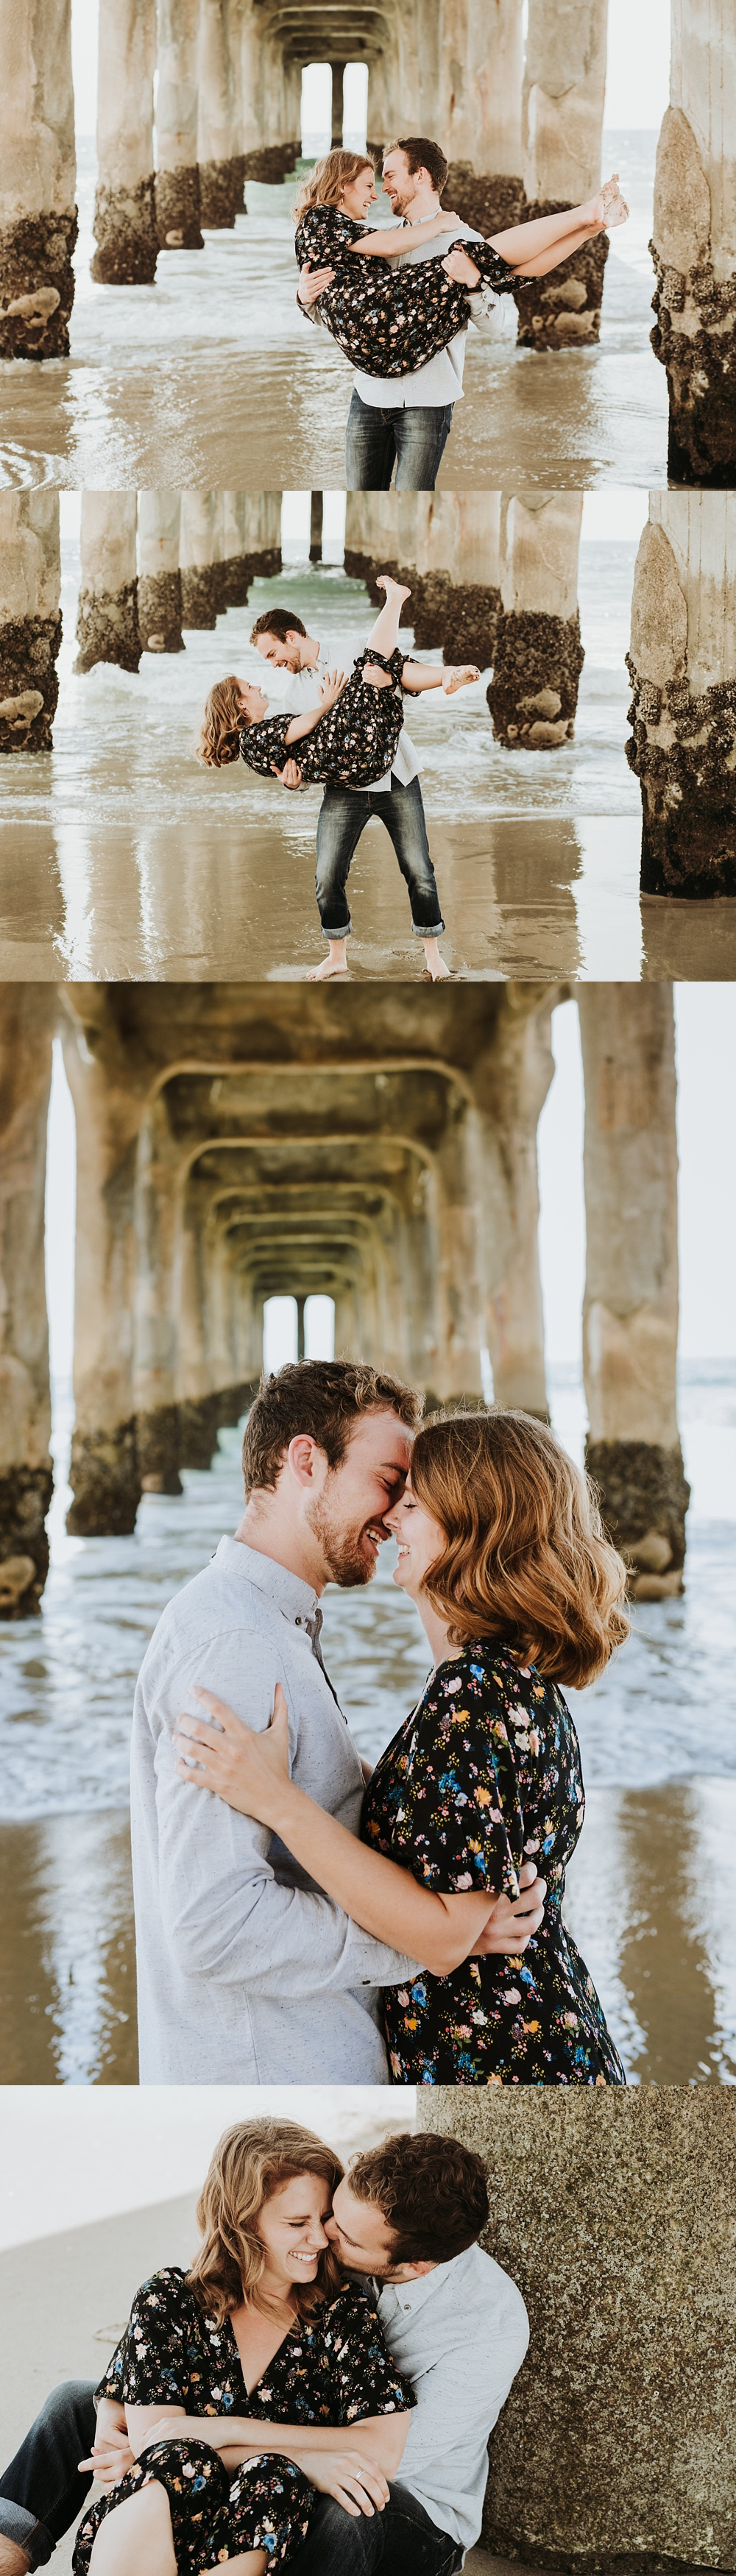 Los Angeles engagement photoshoot Wedding photographer